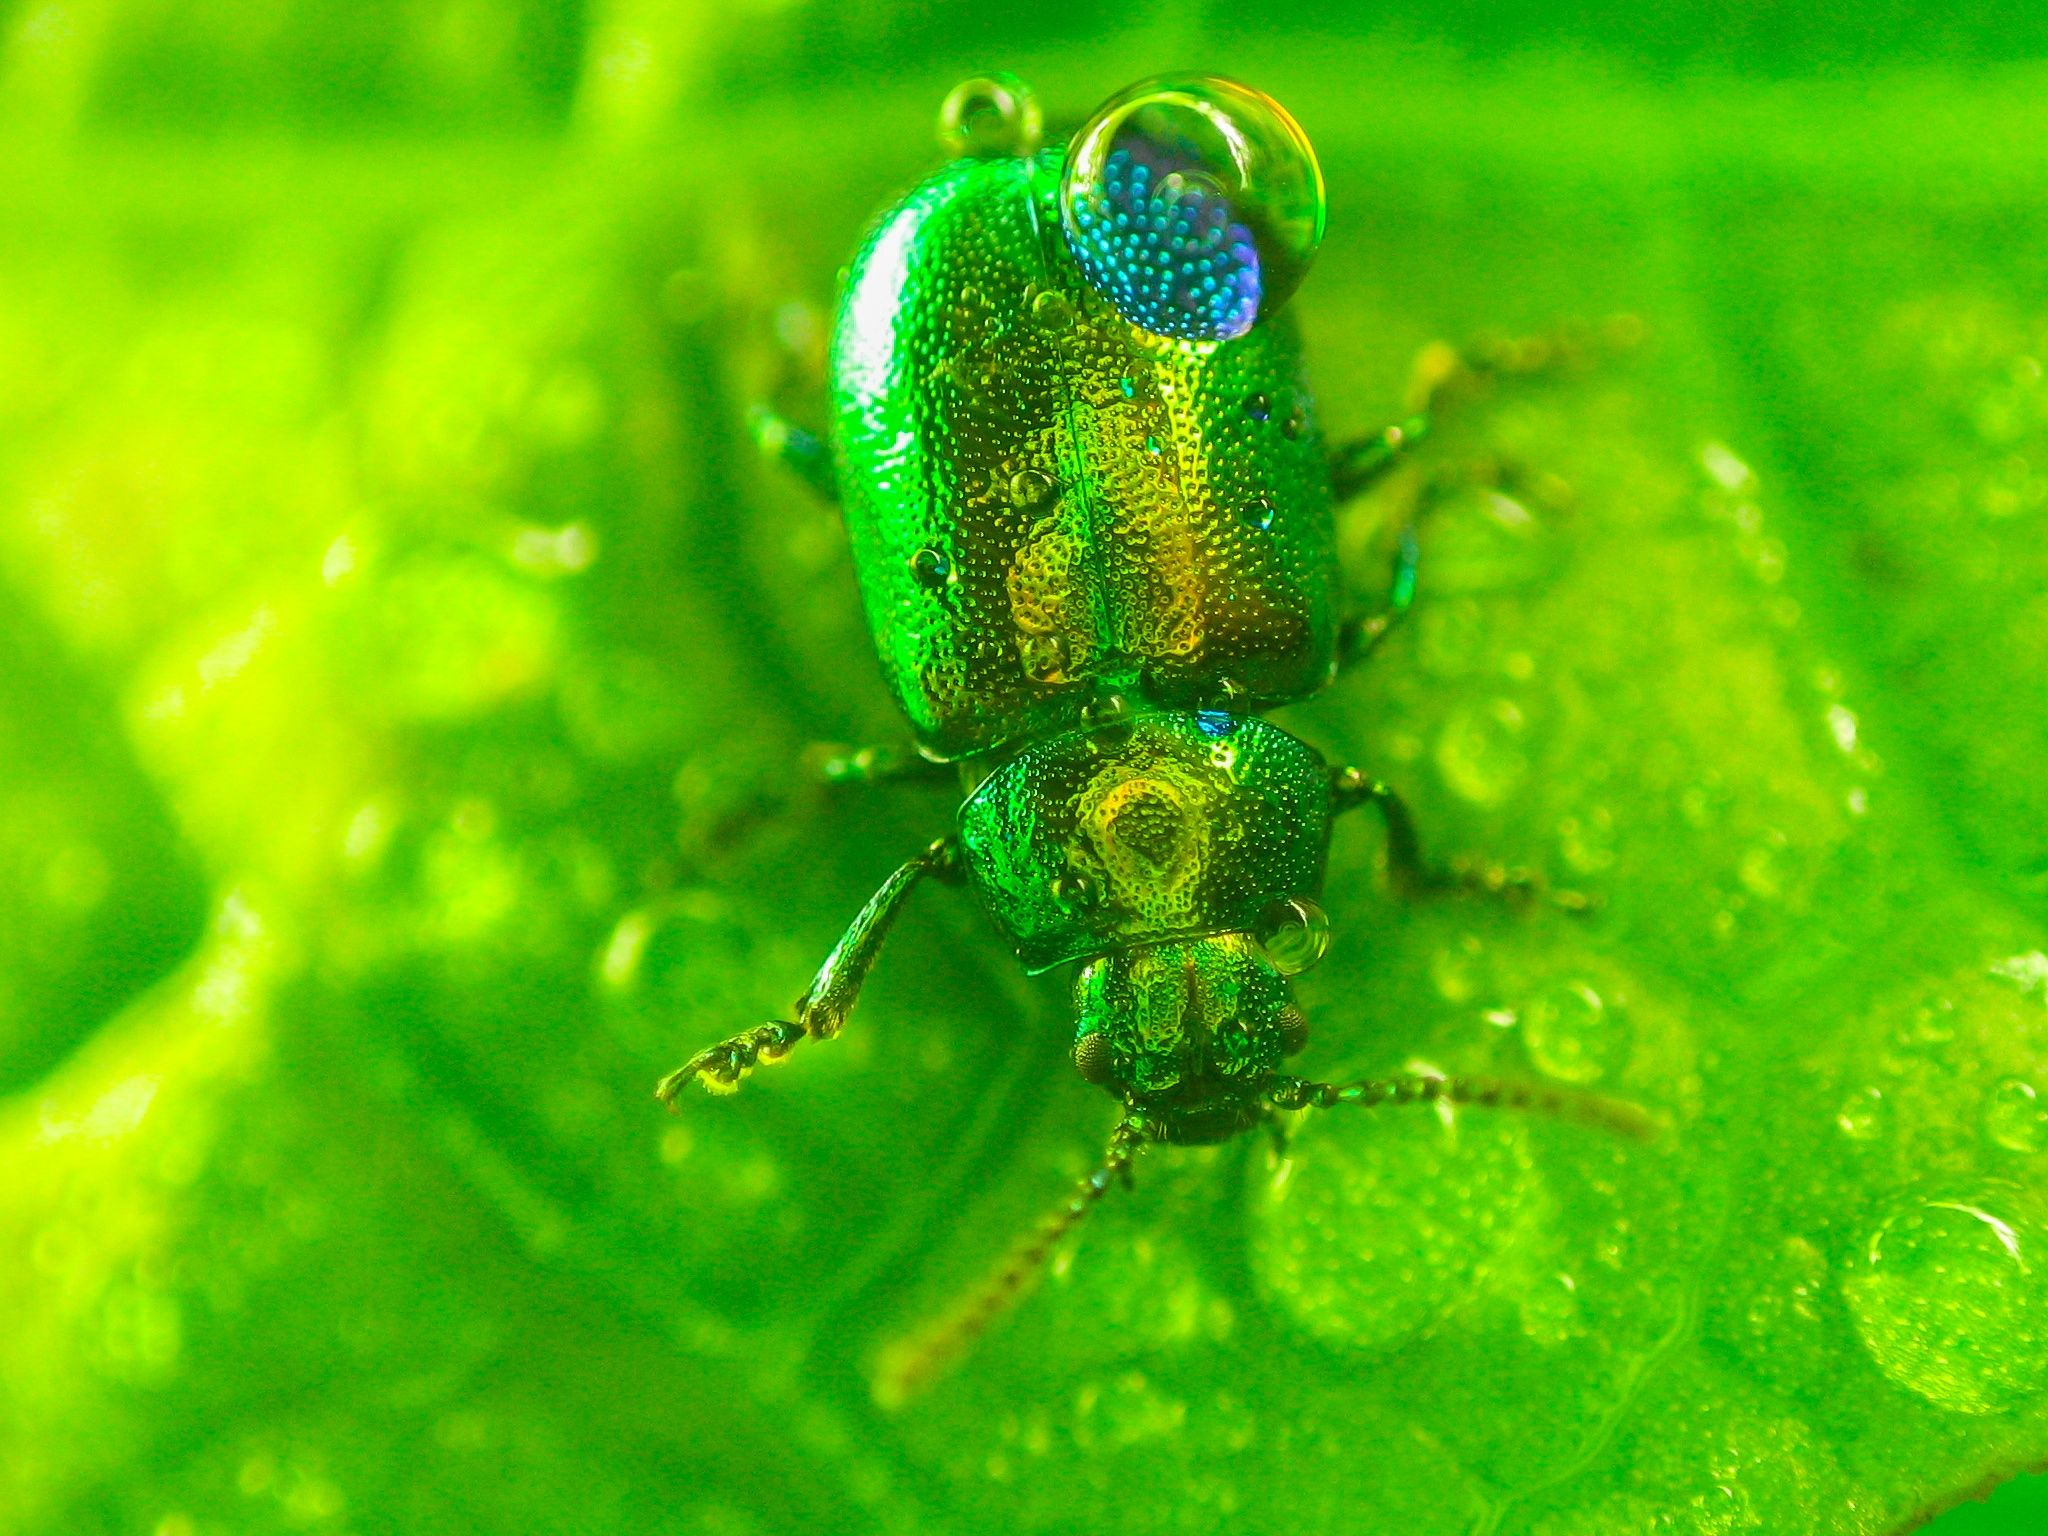 Little green bug with rain drops on it by mihai ologeanu on 500px little green bug with rain drops on it by mihai ologeanu on 500px buycottarizona